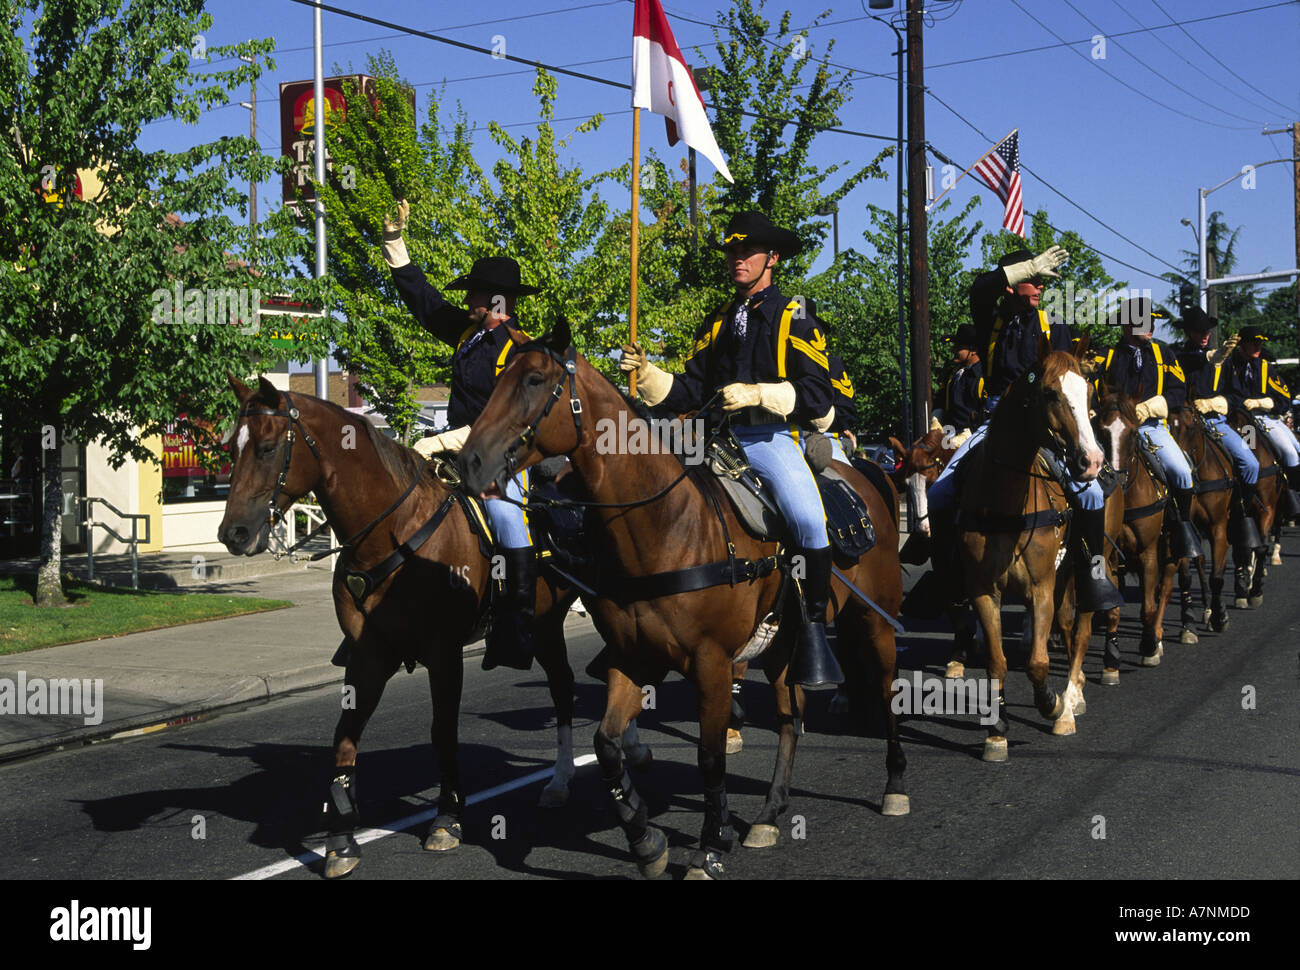 USA, Washington, Puyallup. US Army 1st Calvary Division Horse Cavalry Detachment; Western Rodeo Parade - Stock Image